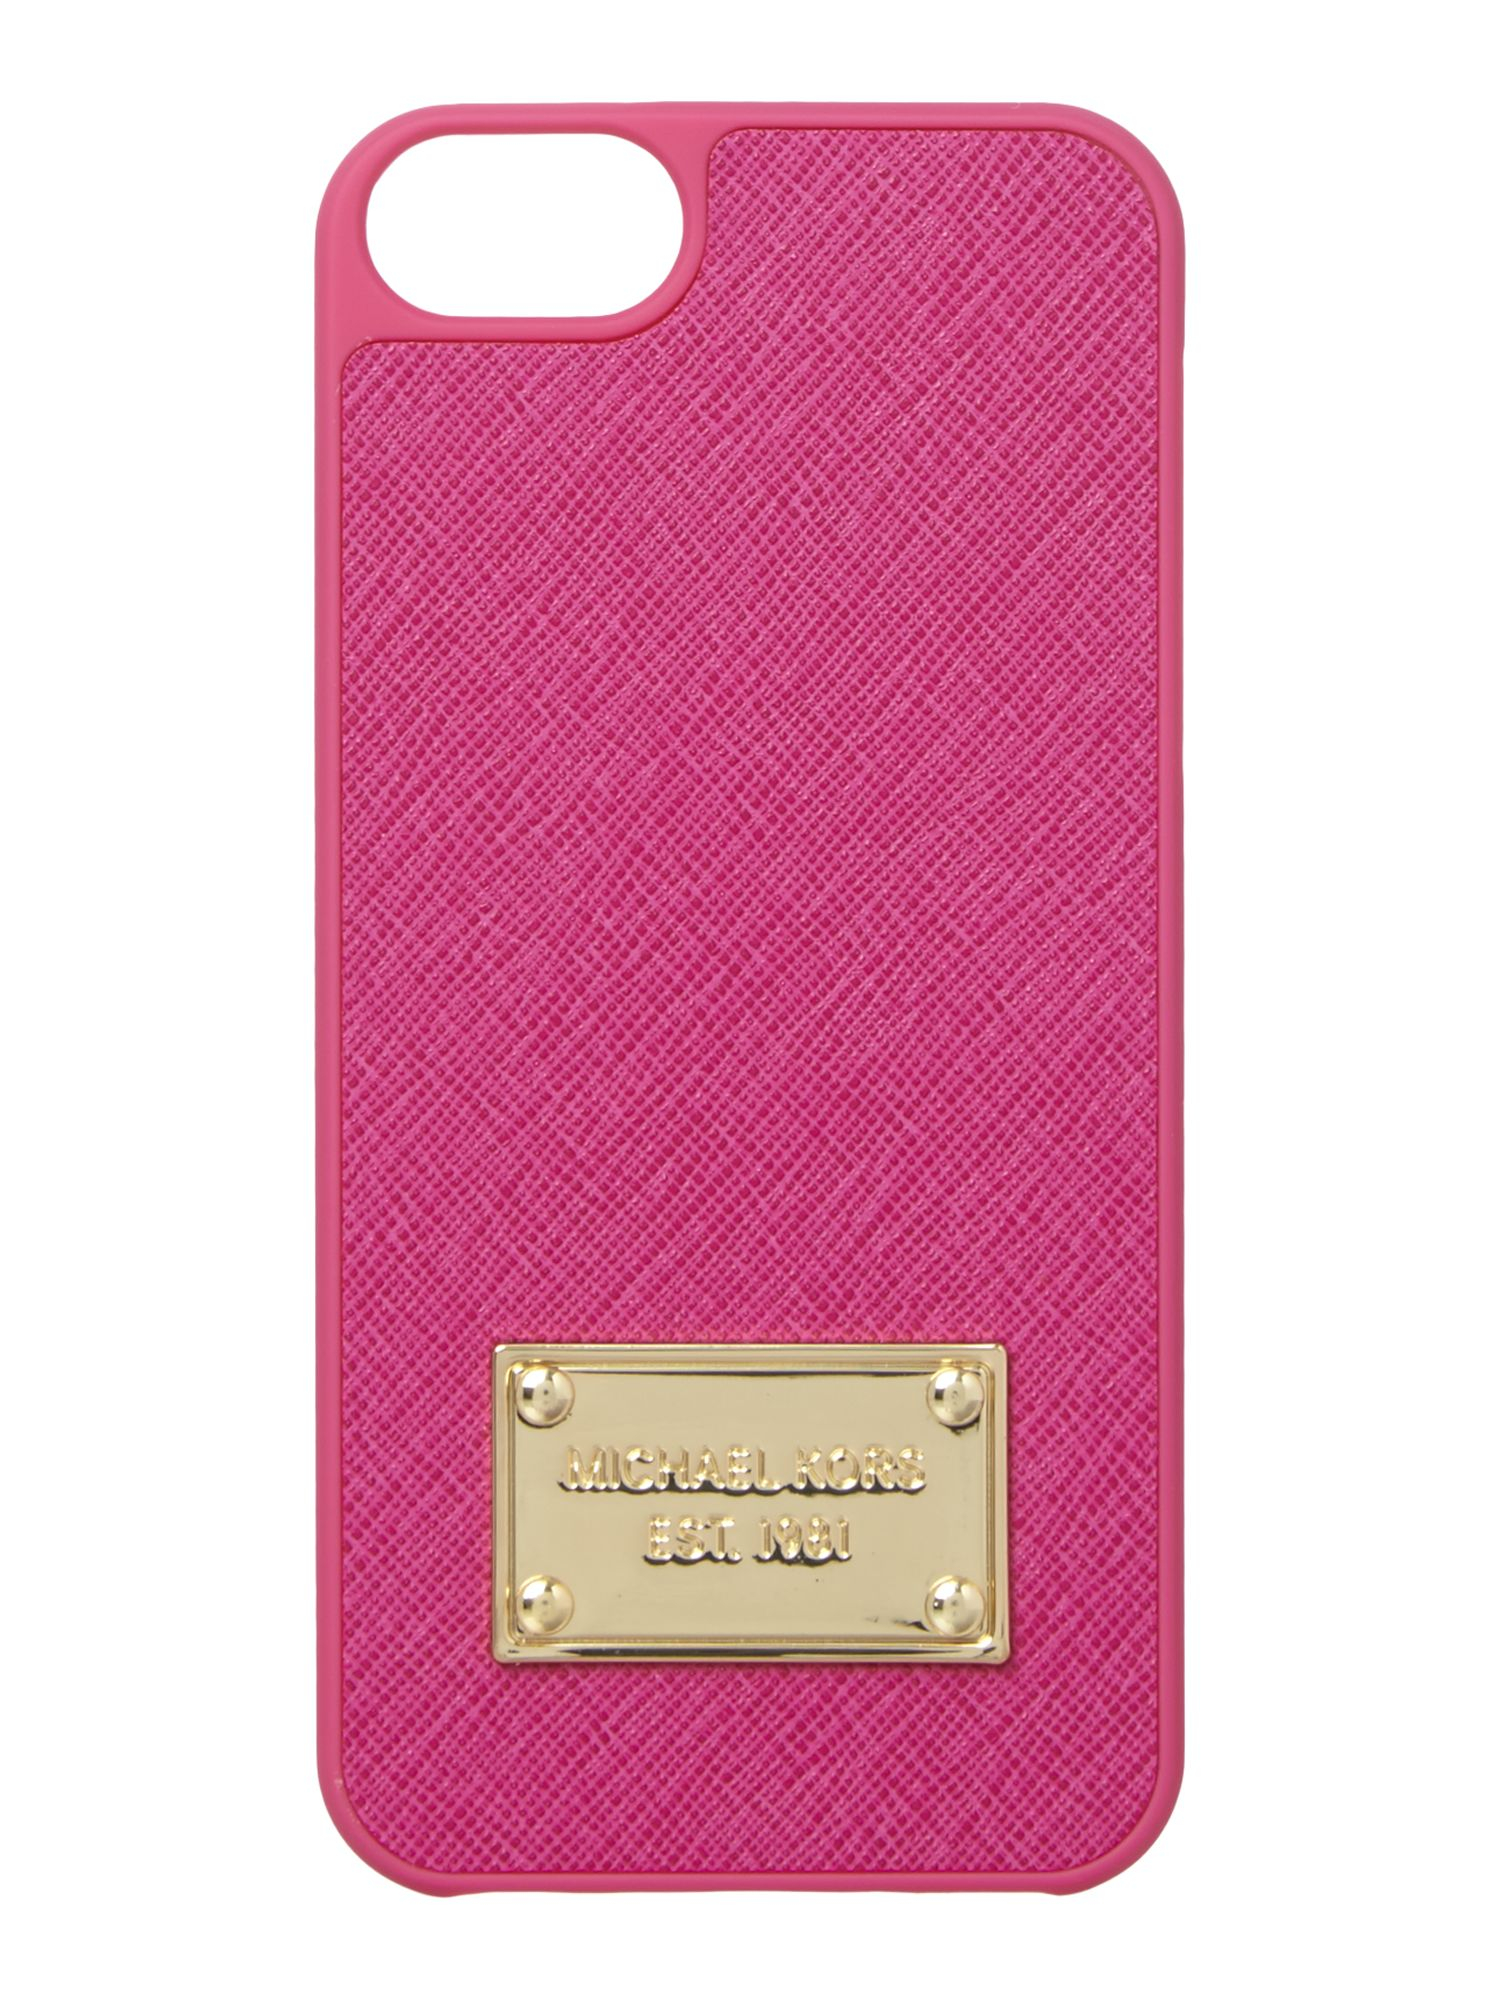 michael kors pink phone cover iphone 5 in pink lyst. Black Bedroom Furniture Sets. Home Design Ideas